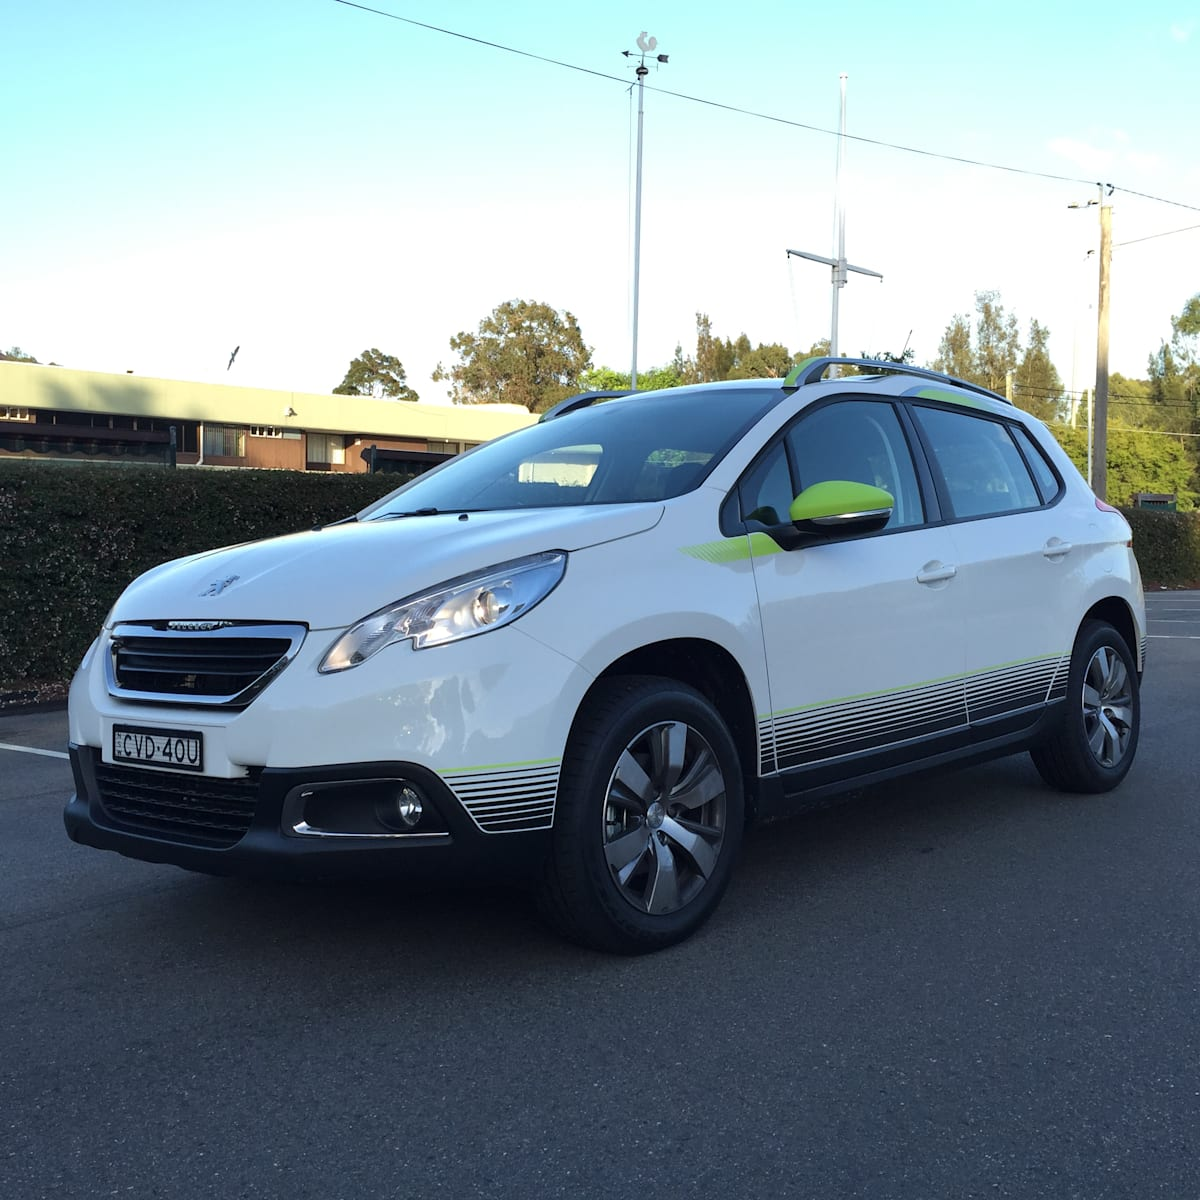 Peugeot 2008 Automatic Review 2015 Peugeot 2008 Active Review Caradvice